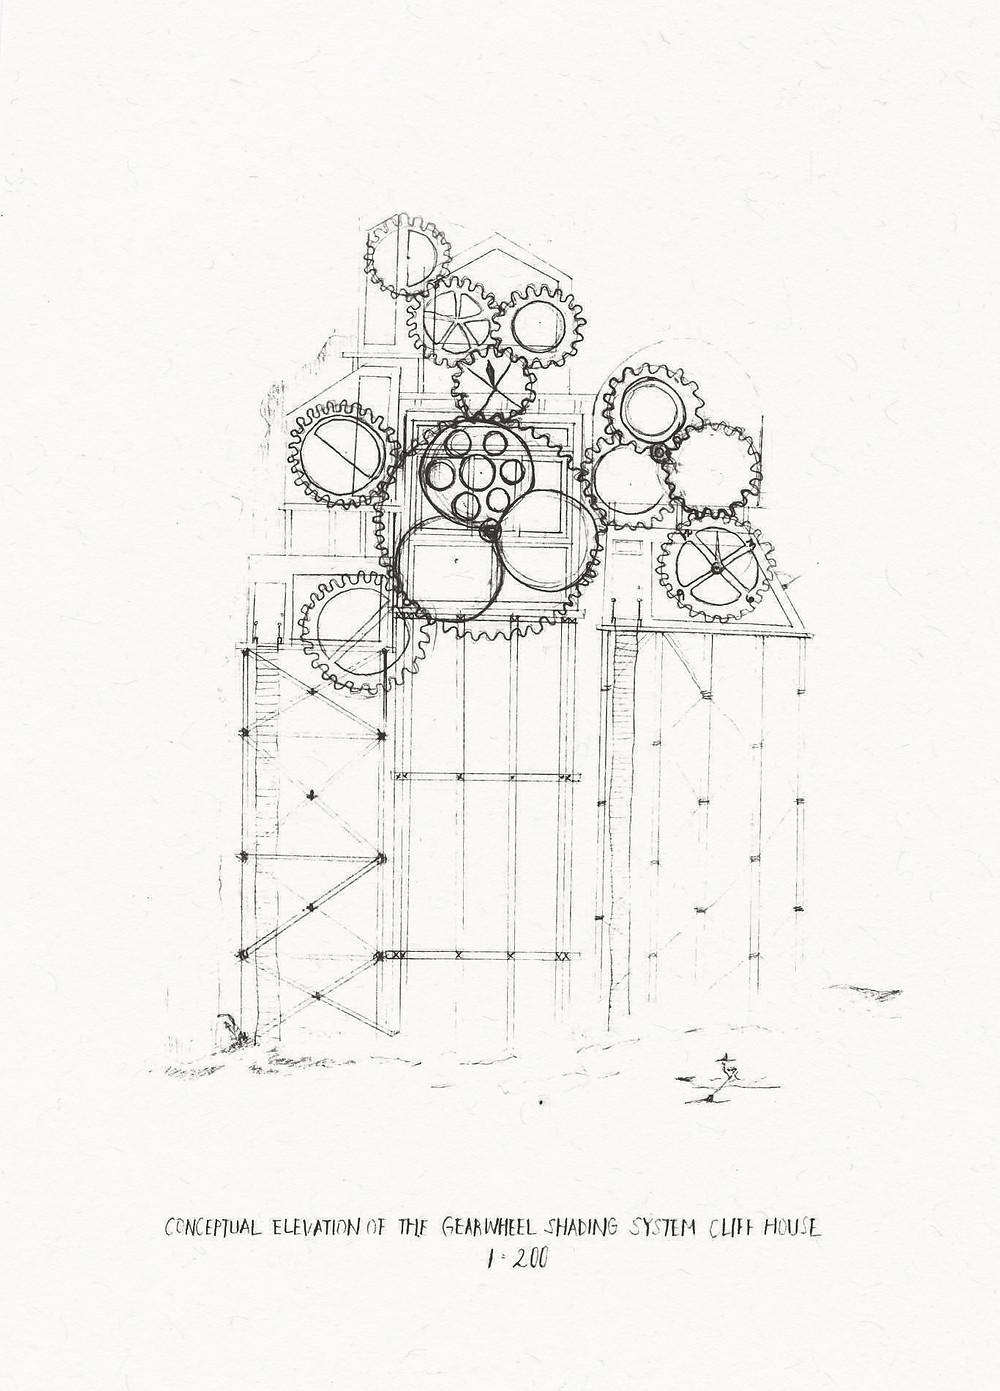 'Conceptual Elevation of the Gearwheel Shading System Cliff House'. 210mm x 297mm. Pencil on paper.